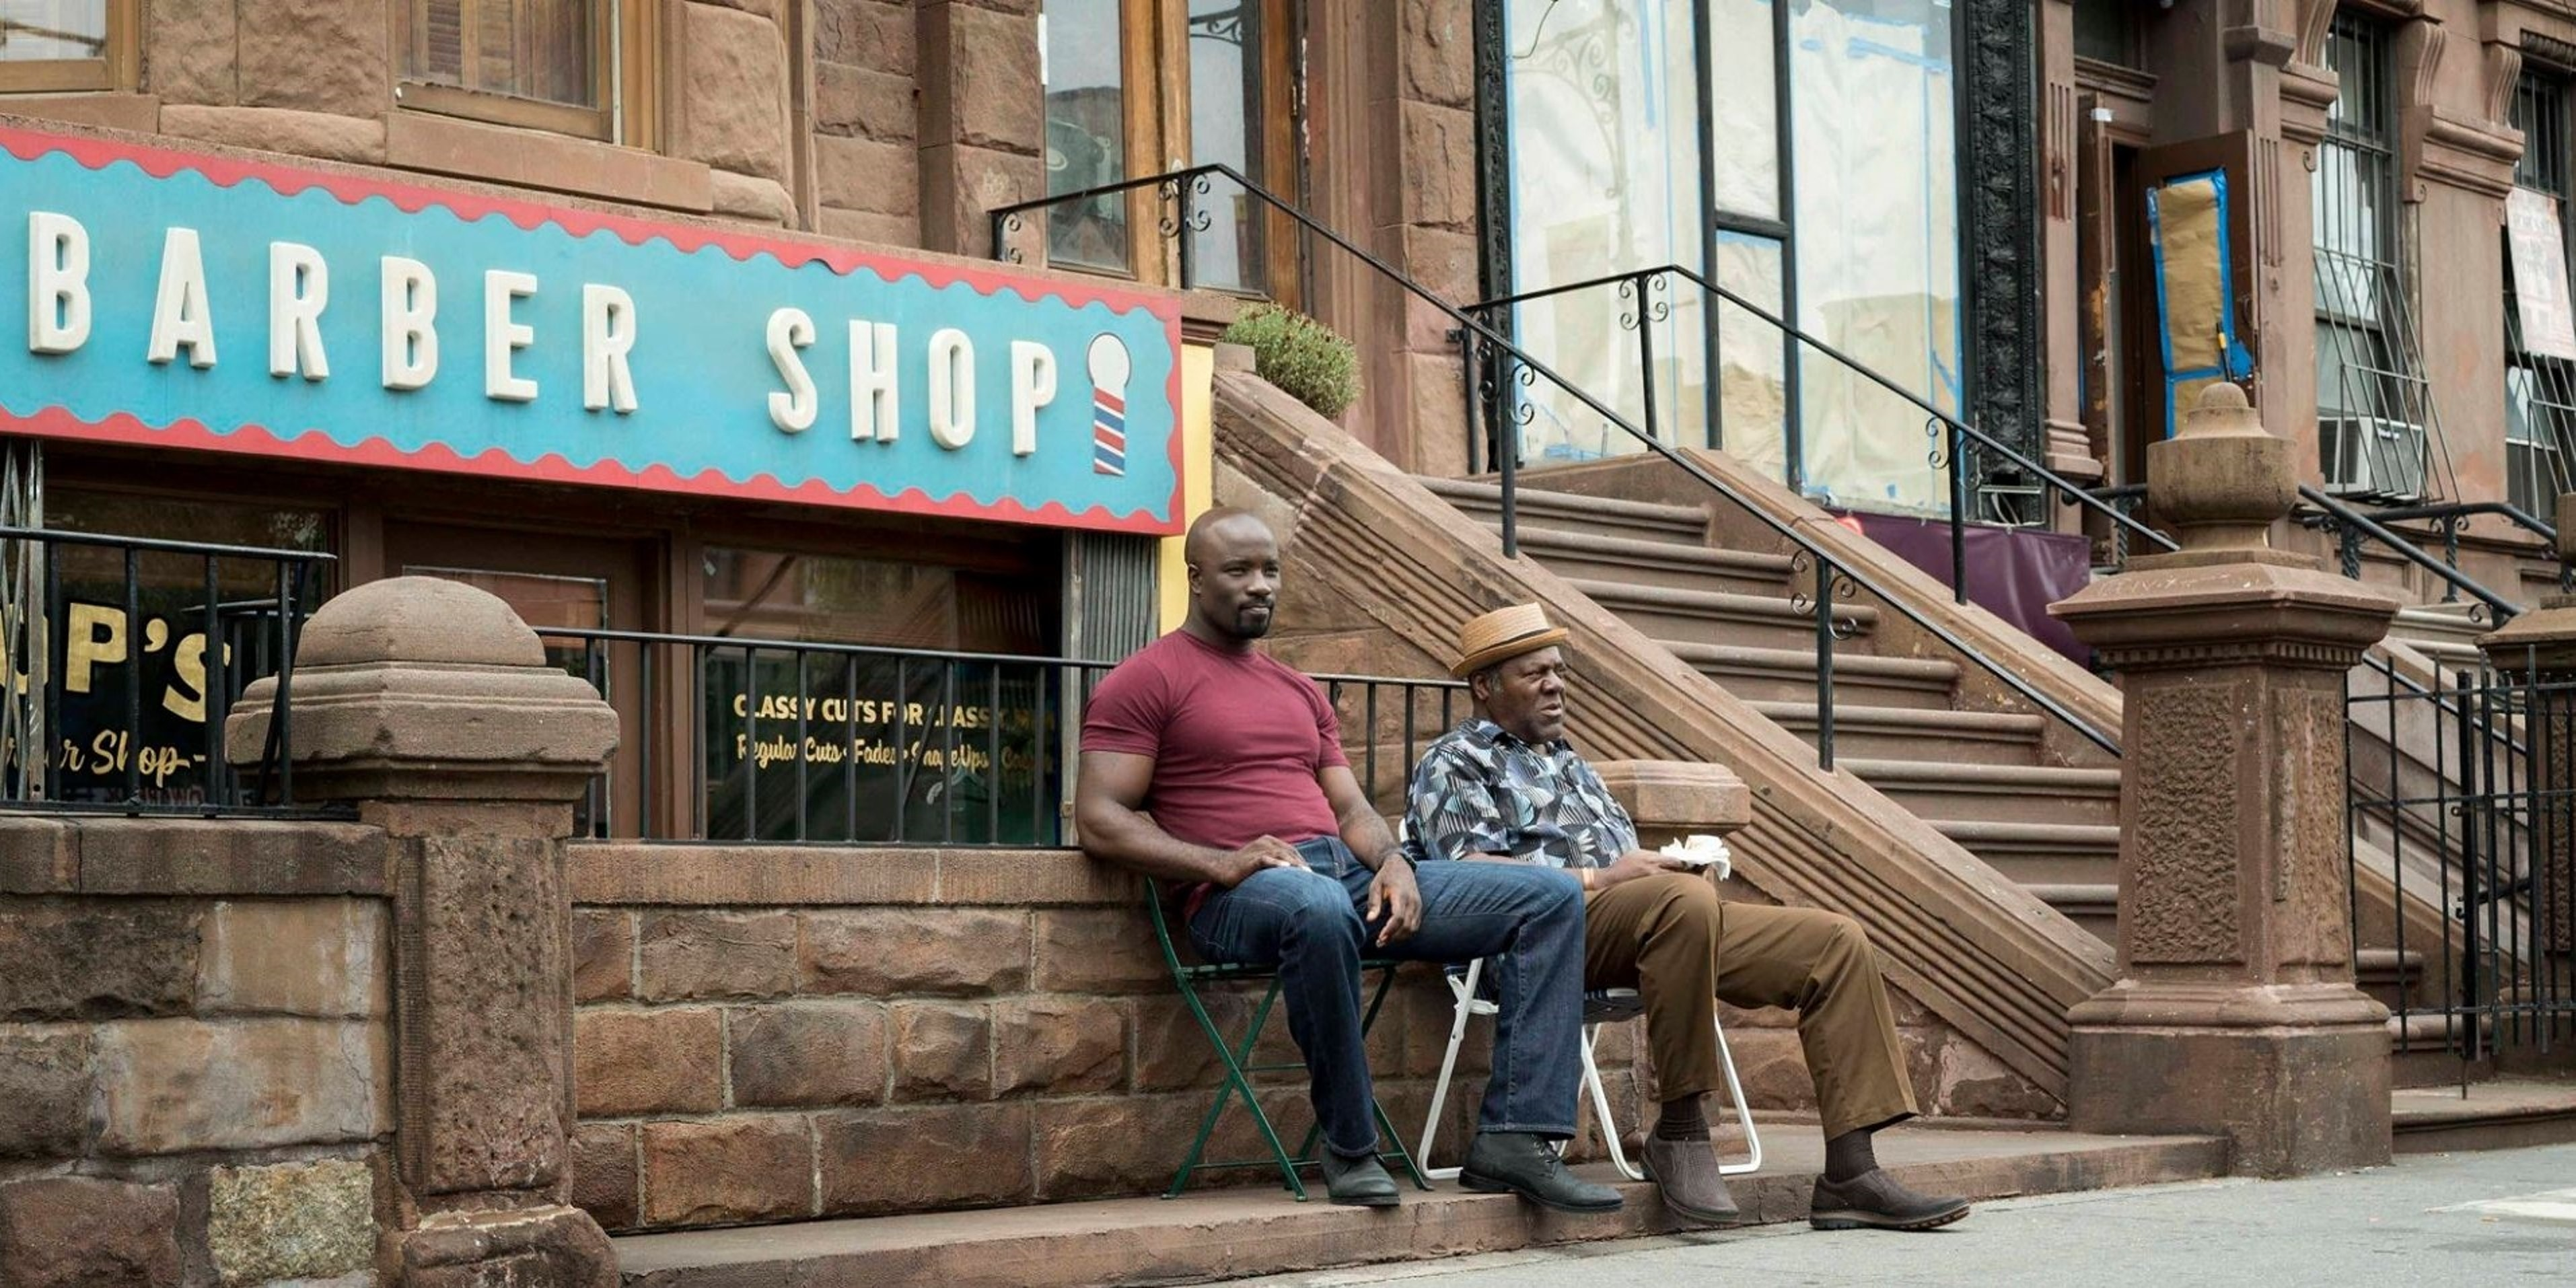 Pop's Barber Shop Luke Cage Netflix